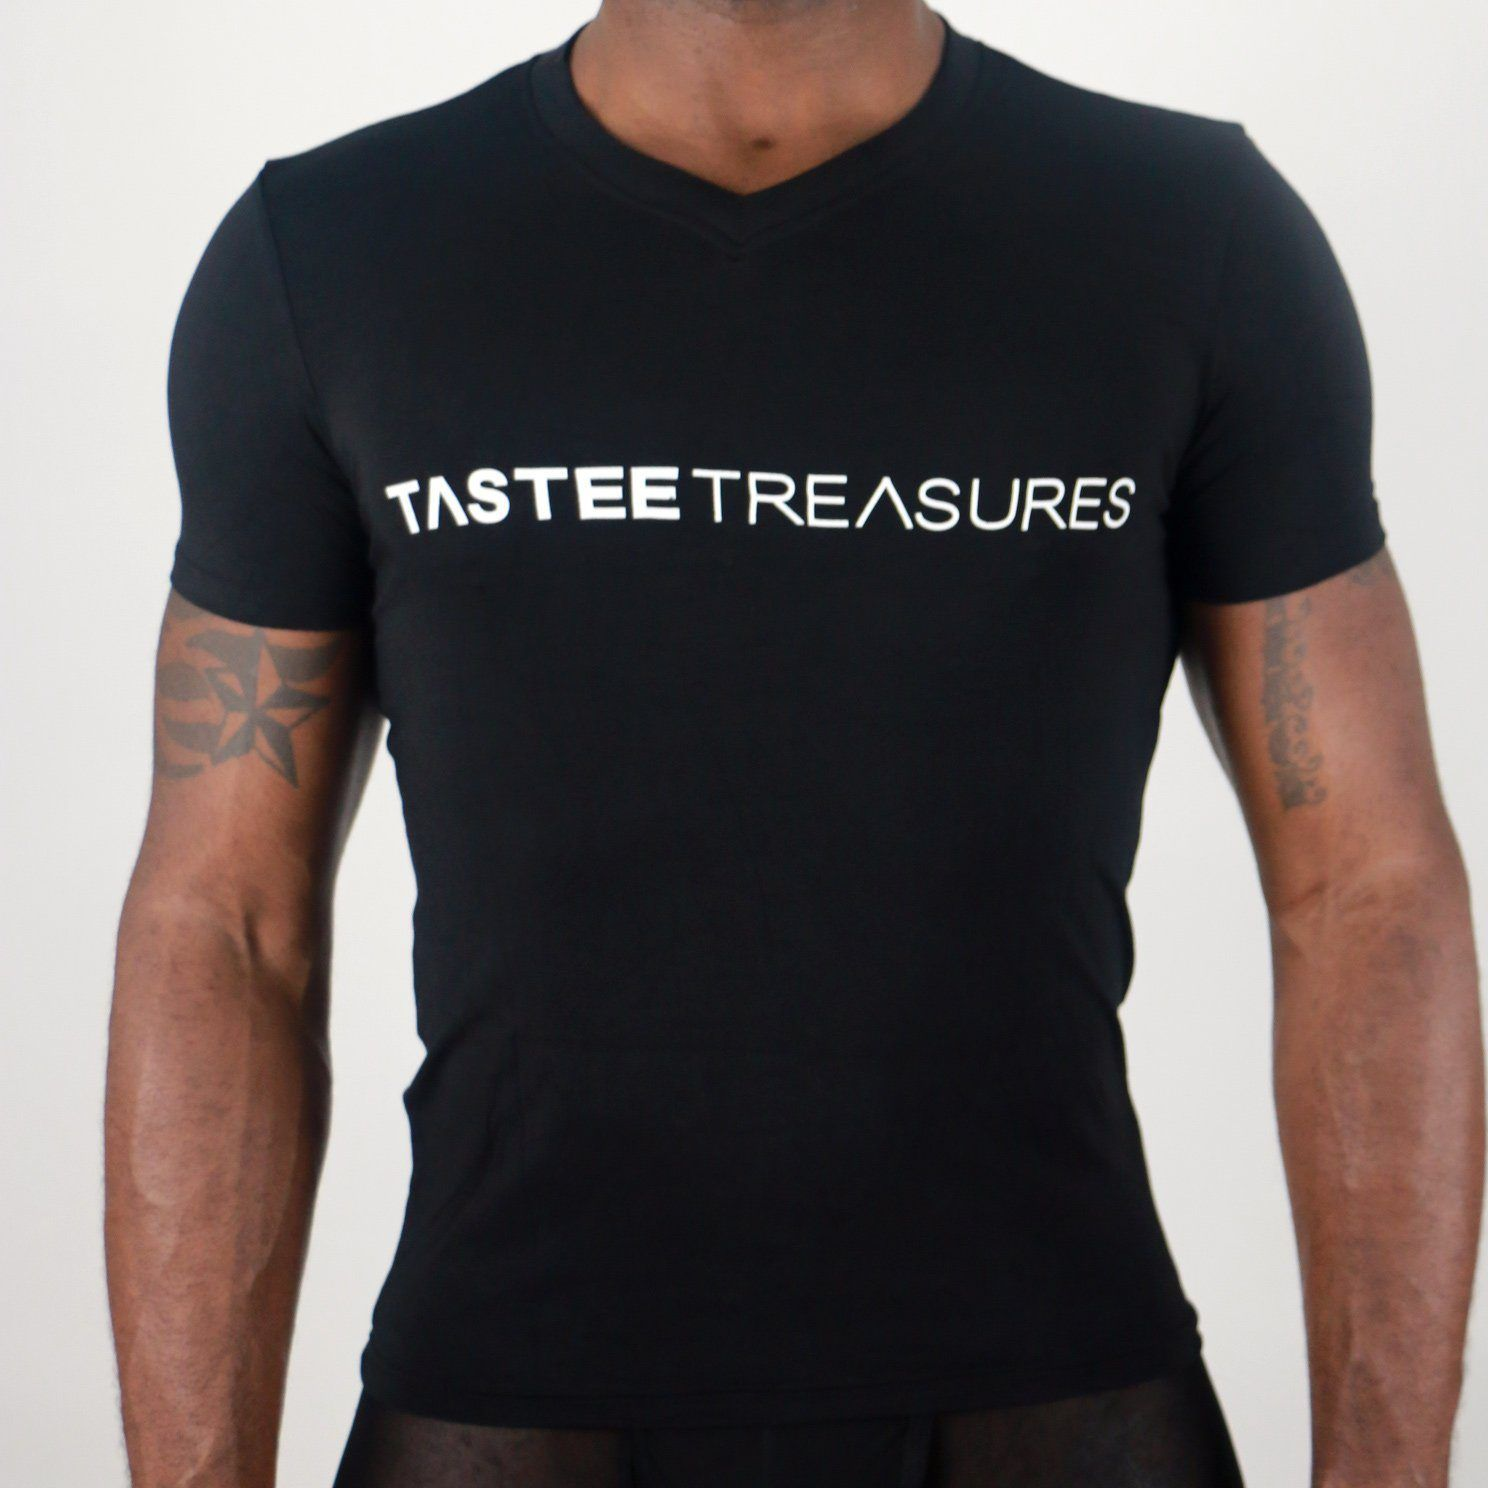 Plush Fitted V Neck Tops and Shirts TasteeTreasures